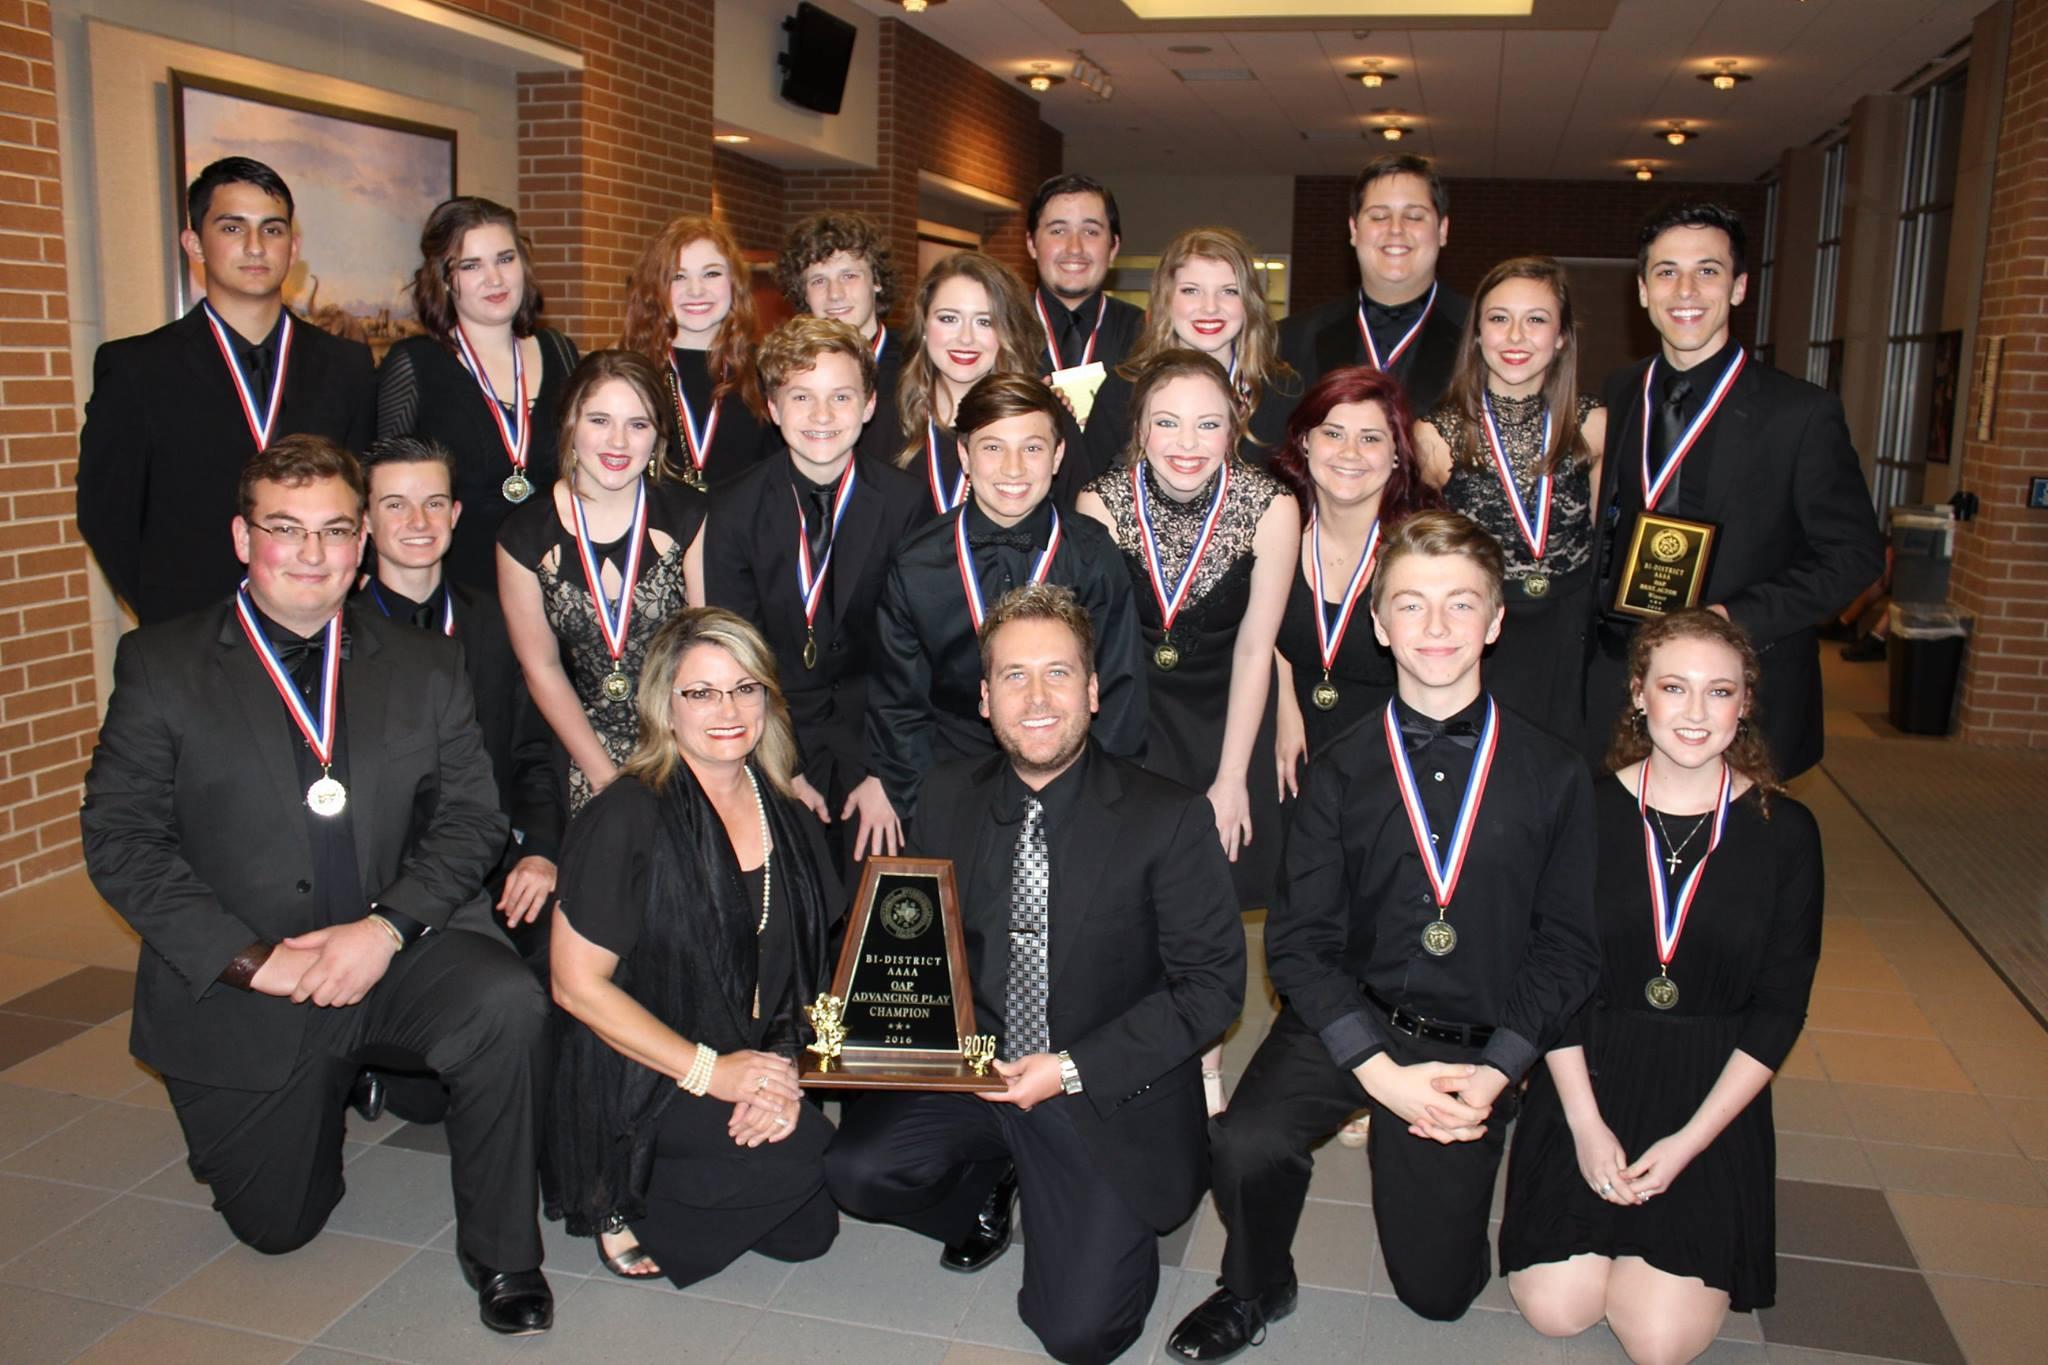 The One Act Play cast and crew recently advanced to the Area round of competition with their performance of